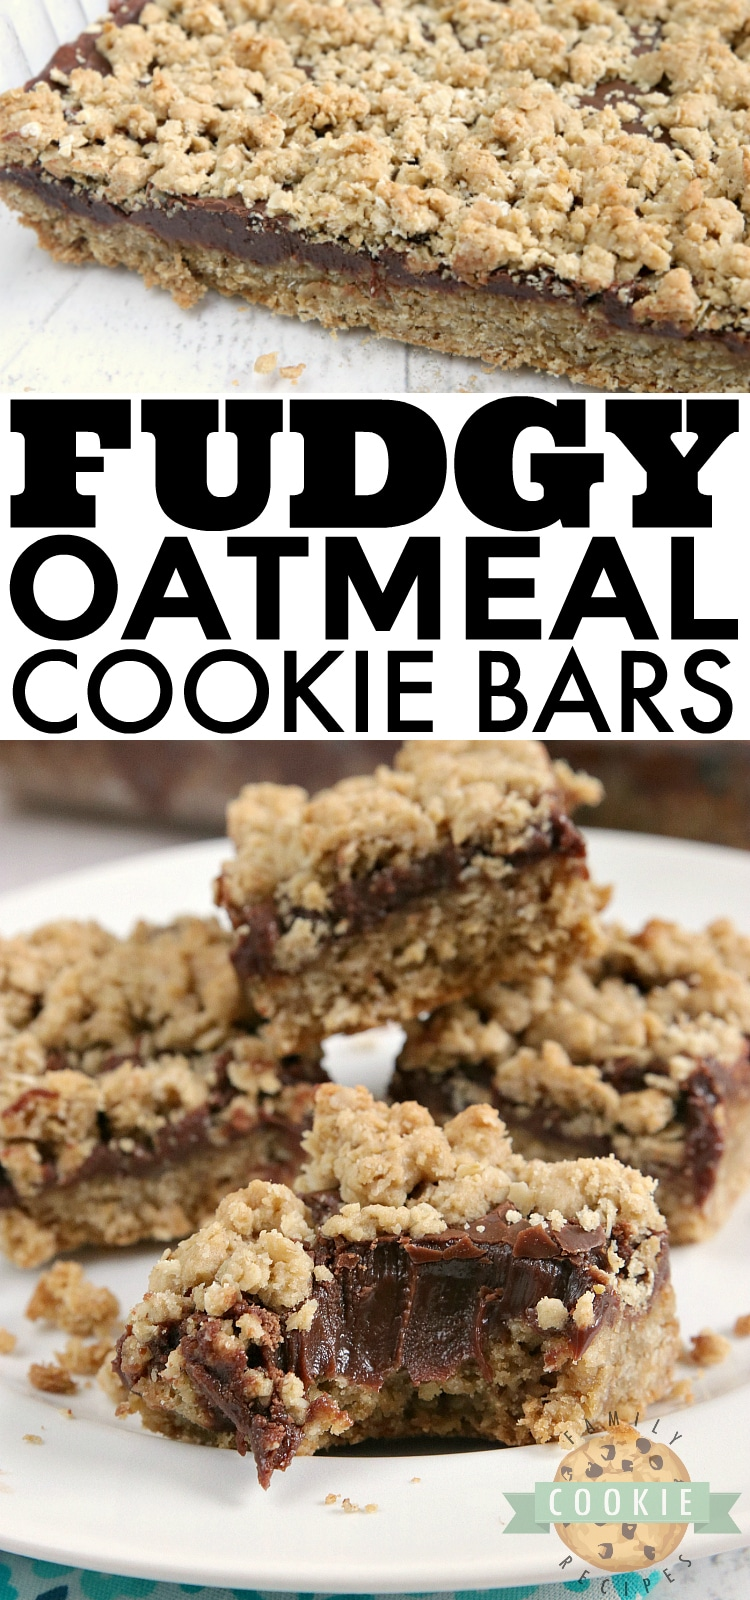 Fudgy Oatmeal Cookie Bars are made with a thick chocolate ganache in between two layers of a soft and chewy oatmeal cookie recipe. This cookie bar recipe is absolutely amazing! via @familycookierecipes